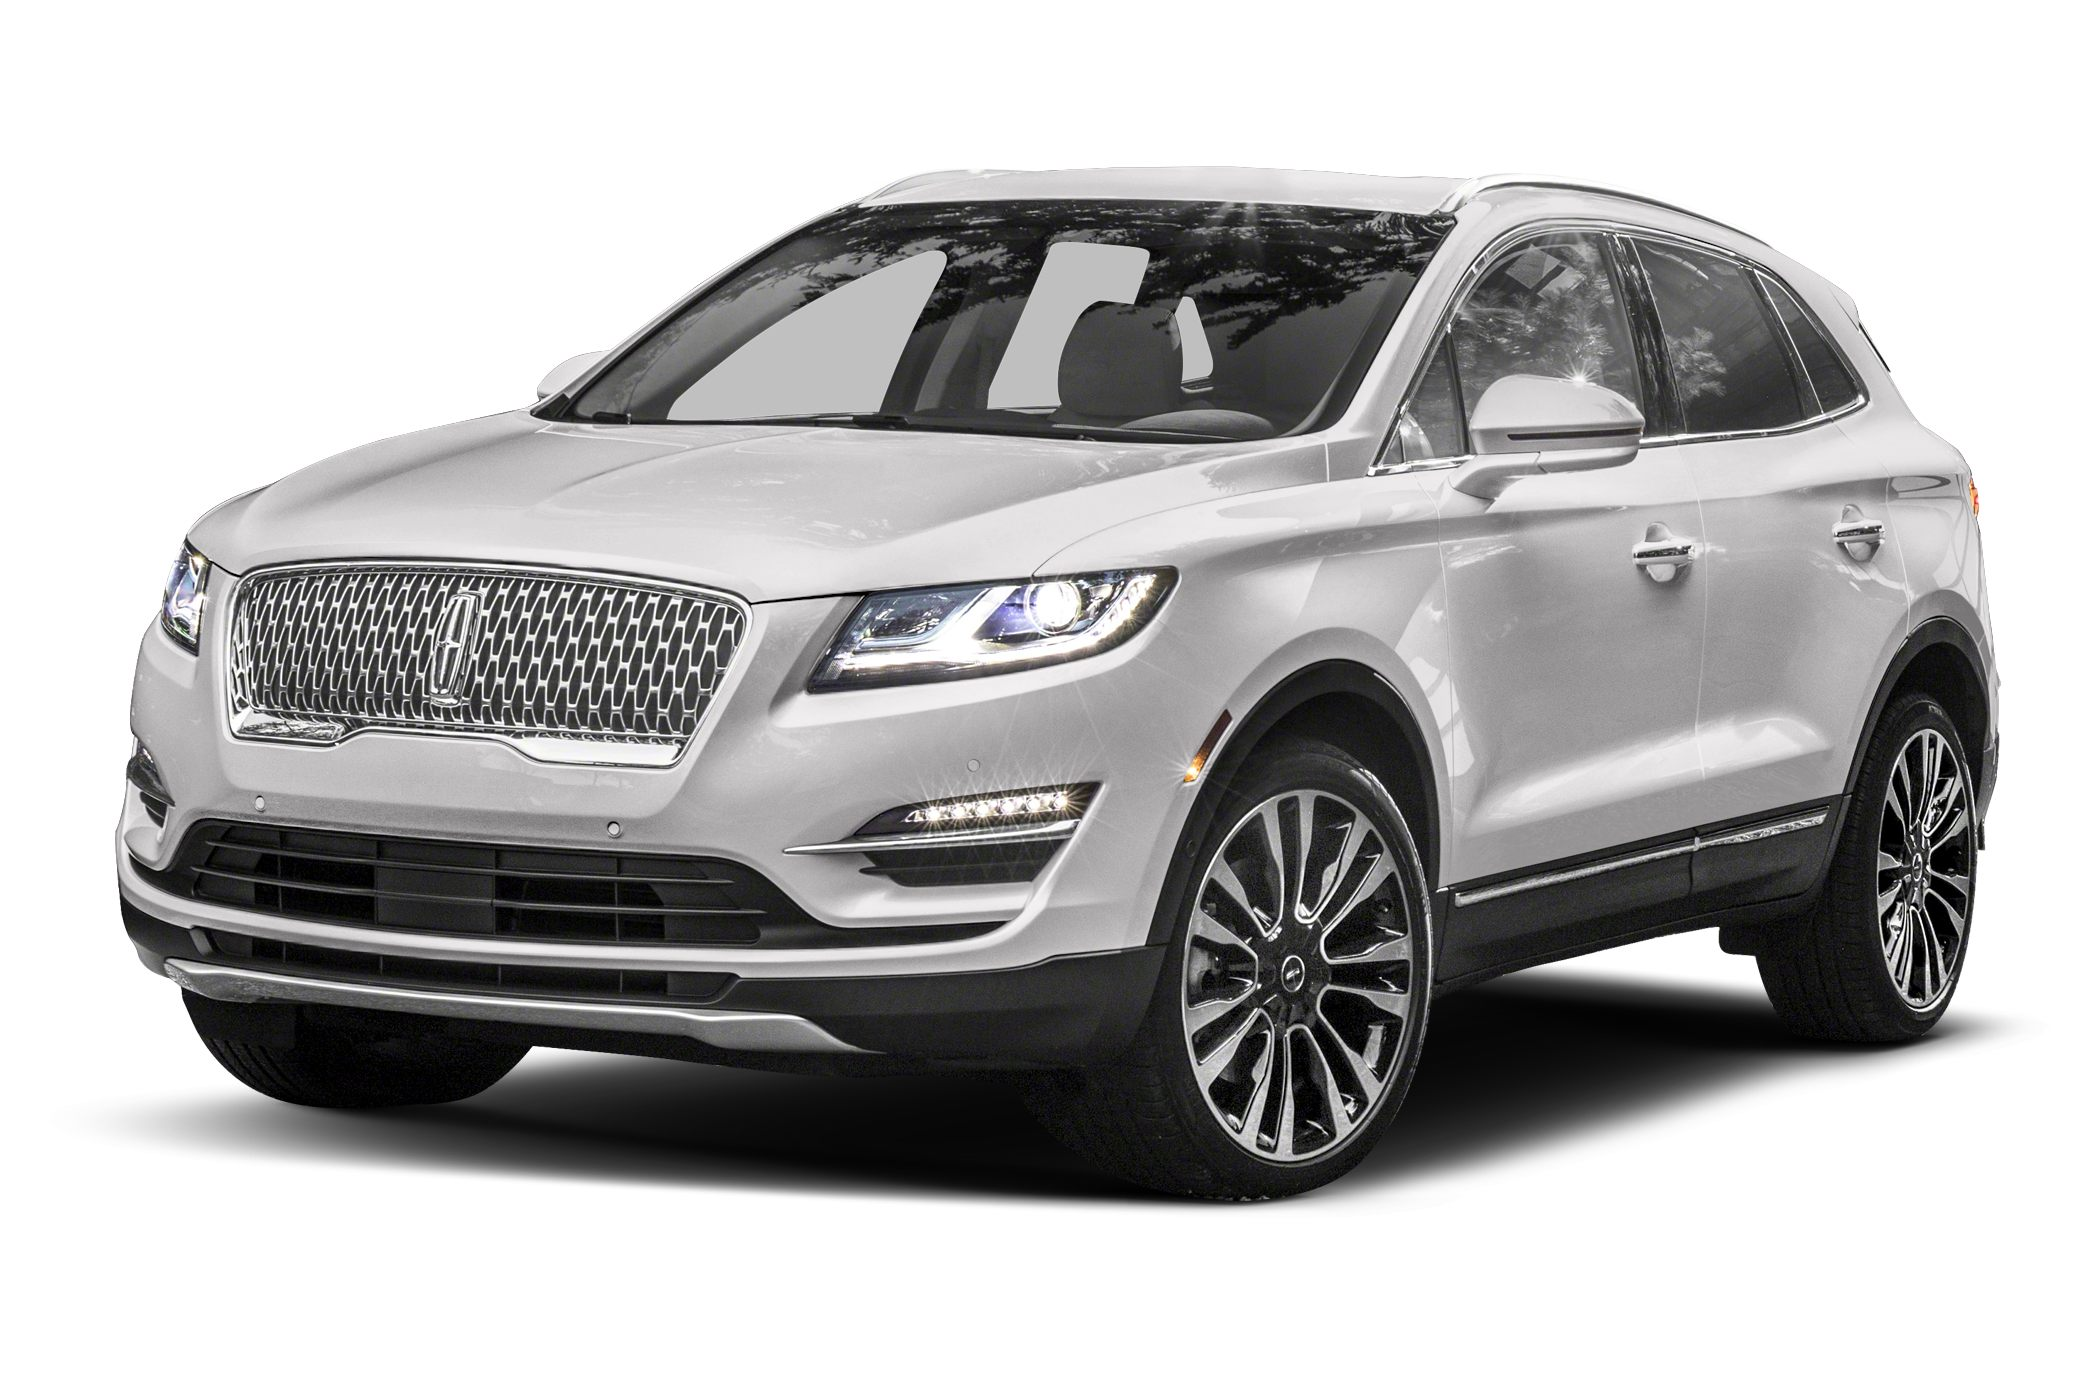 Lincoln Mkc For Sale >> Matthew McConaughey dusts off his Lincoln Lawyer jacket [w/videos] - Autoblog